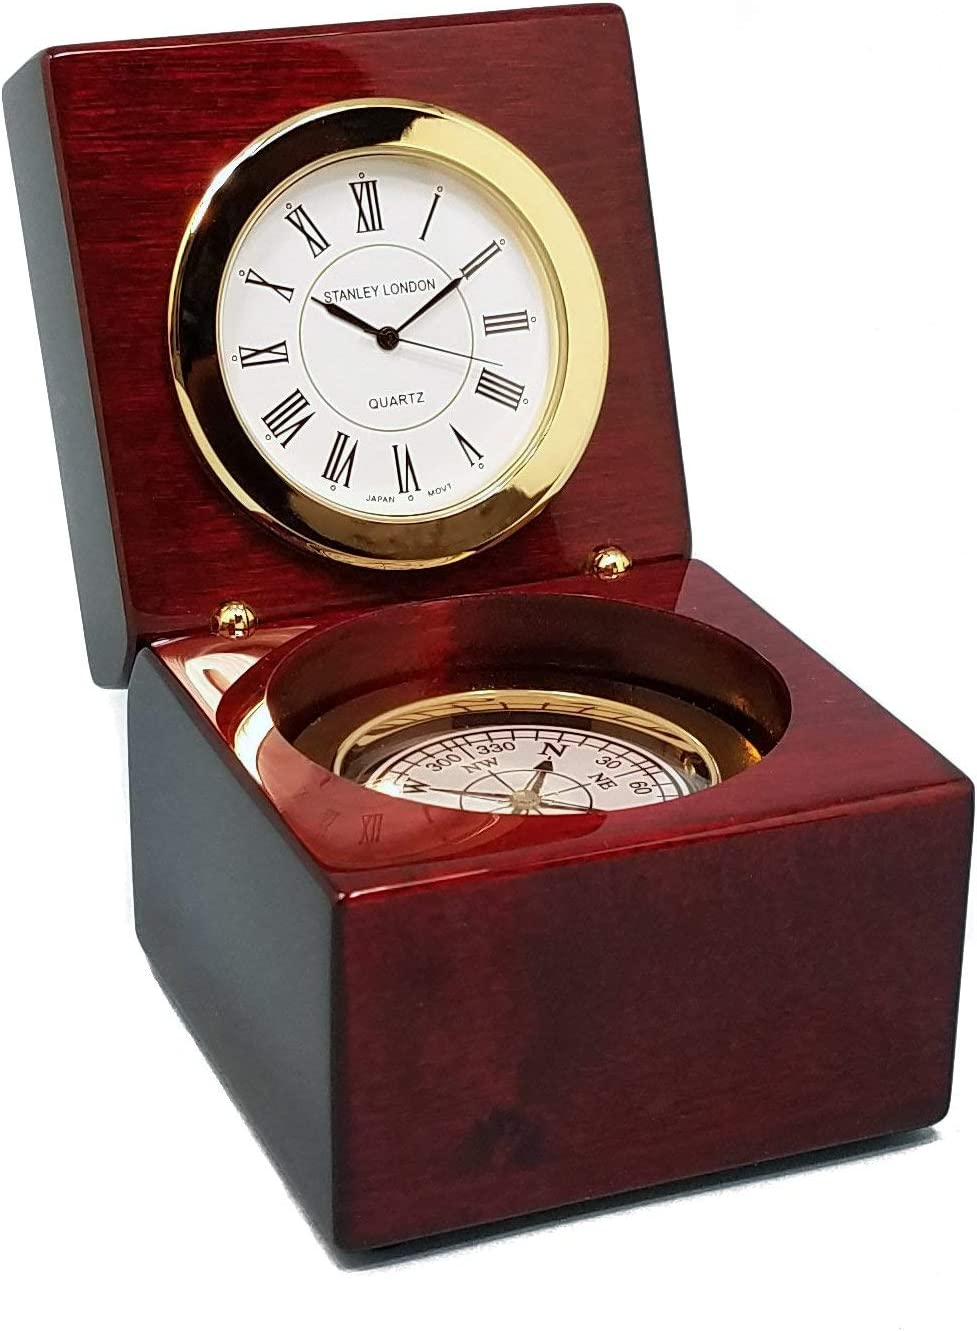 Stanley London Engravable Executive Navigator Desk Clock and Compass